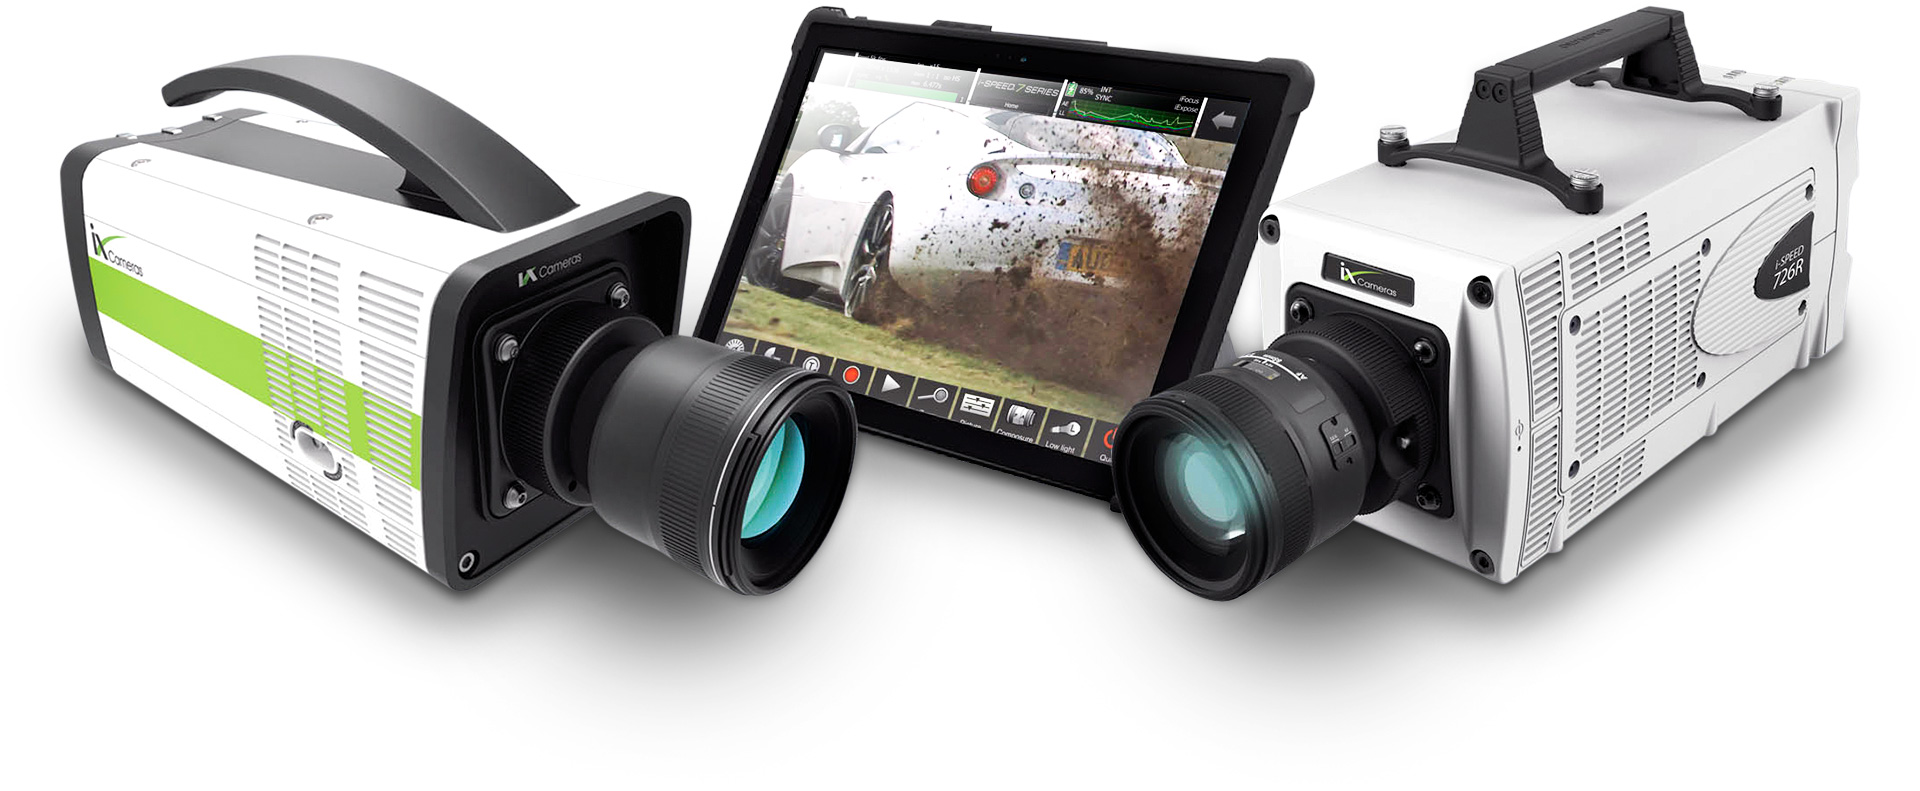 i-SPEED 7 Series instrumentation and rugged cameras with CDUe.